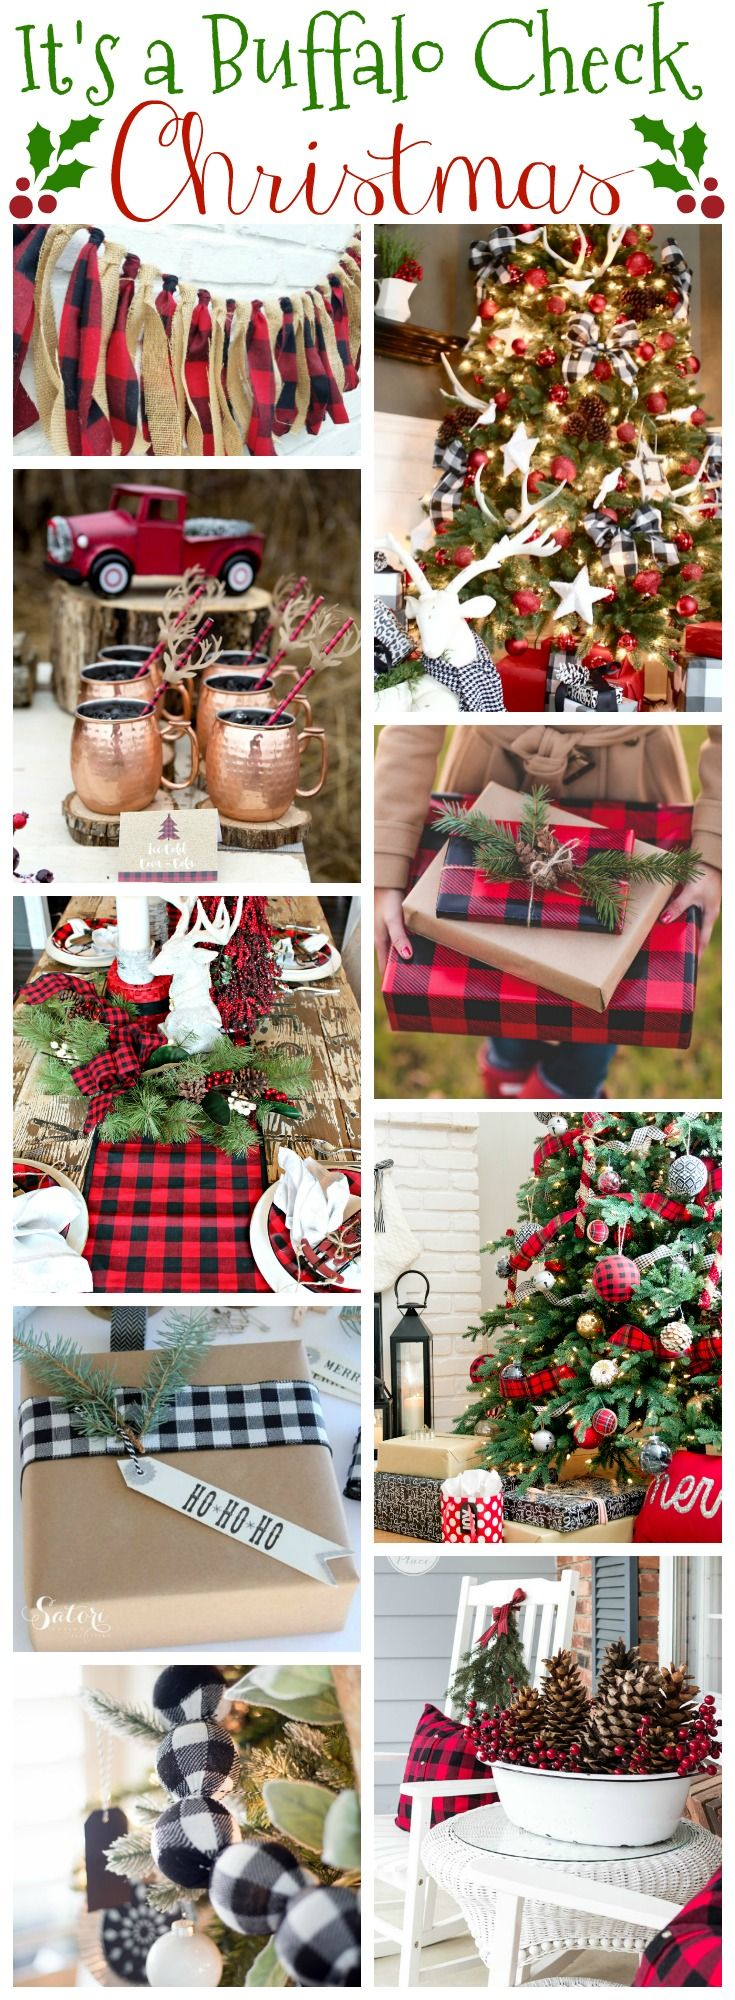 Country christmas table decoration ideas - Buffalo Check Christmas Decor Wrap Ideas